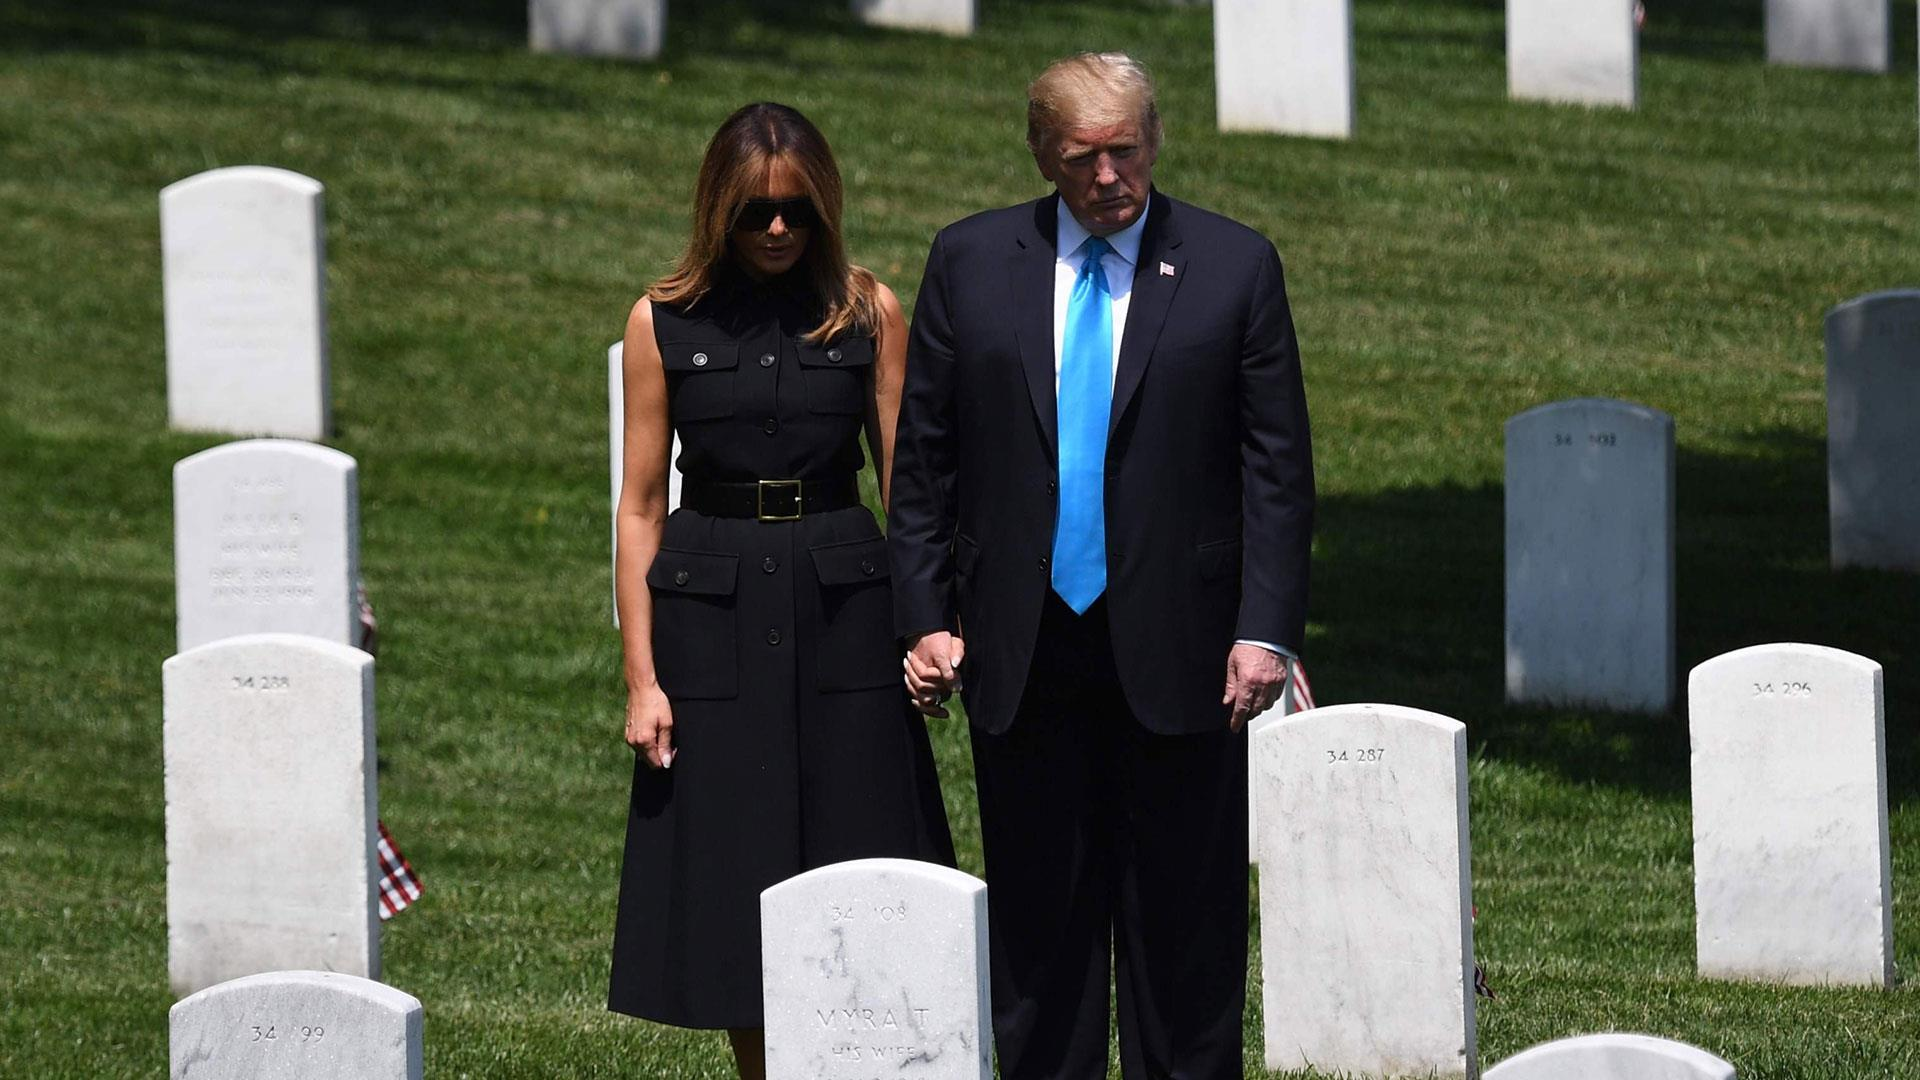 President Trump and Melania pay respects at Arlington National Cemetery